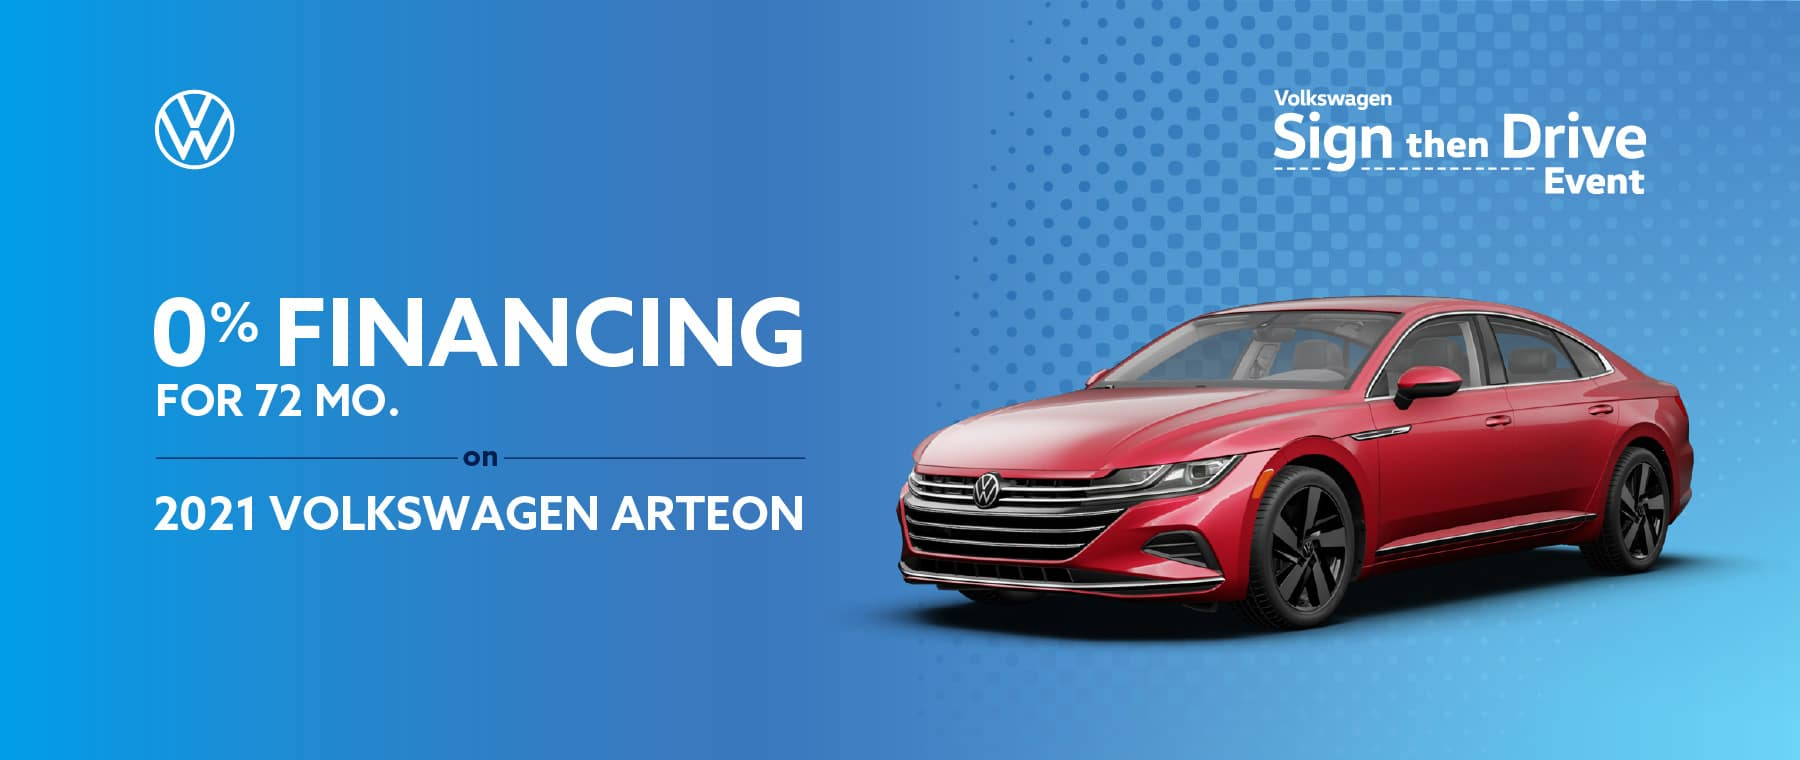 0% Financing on VW Arteon